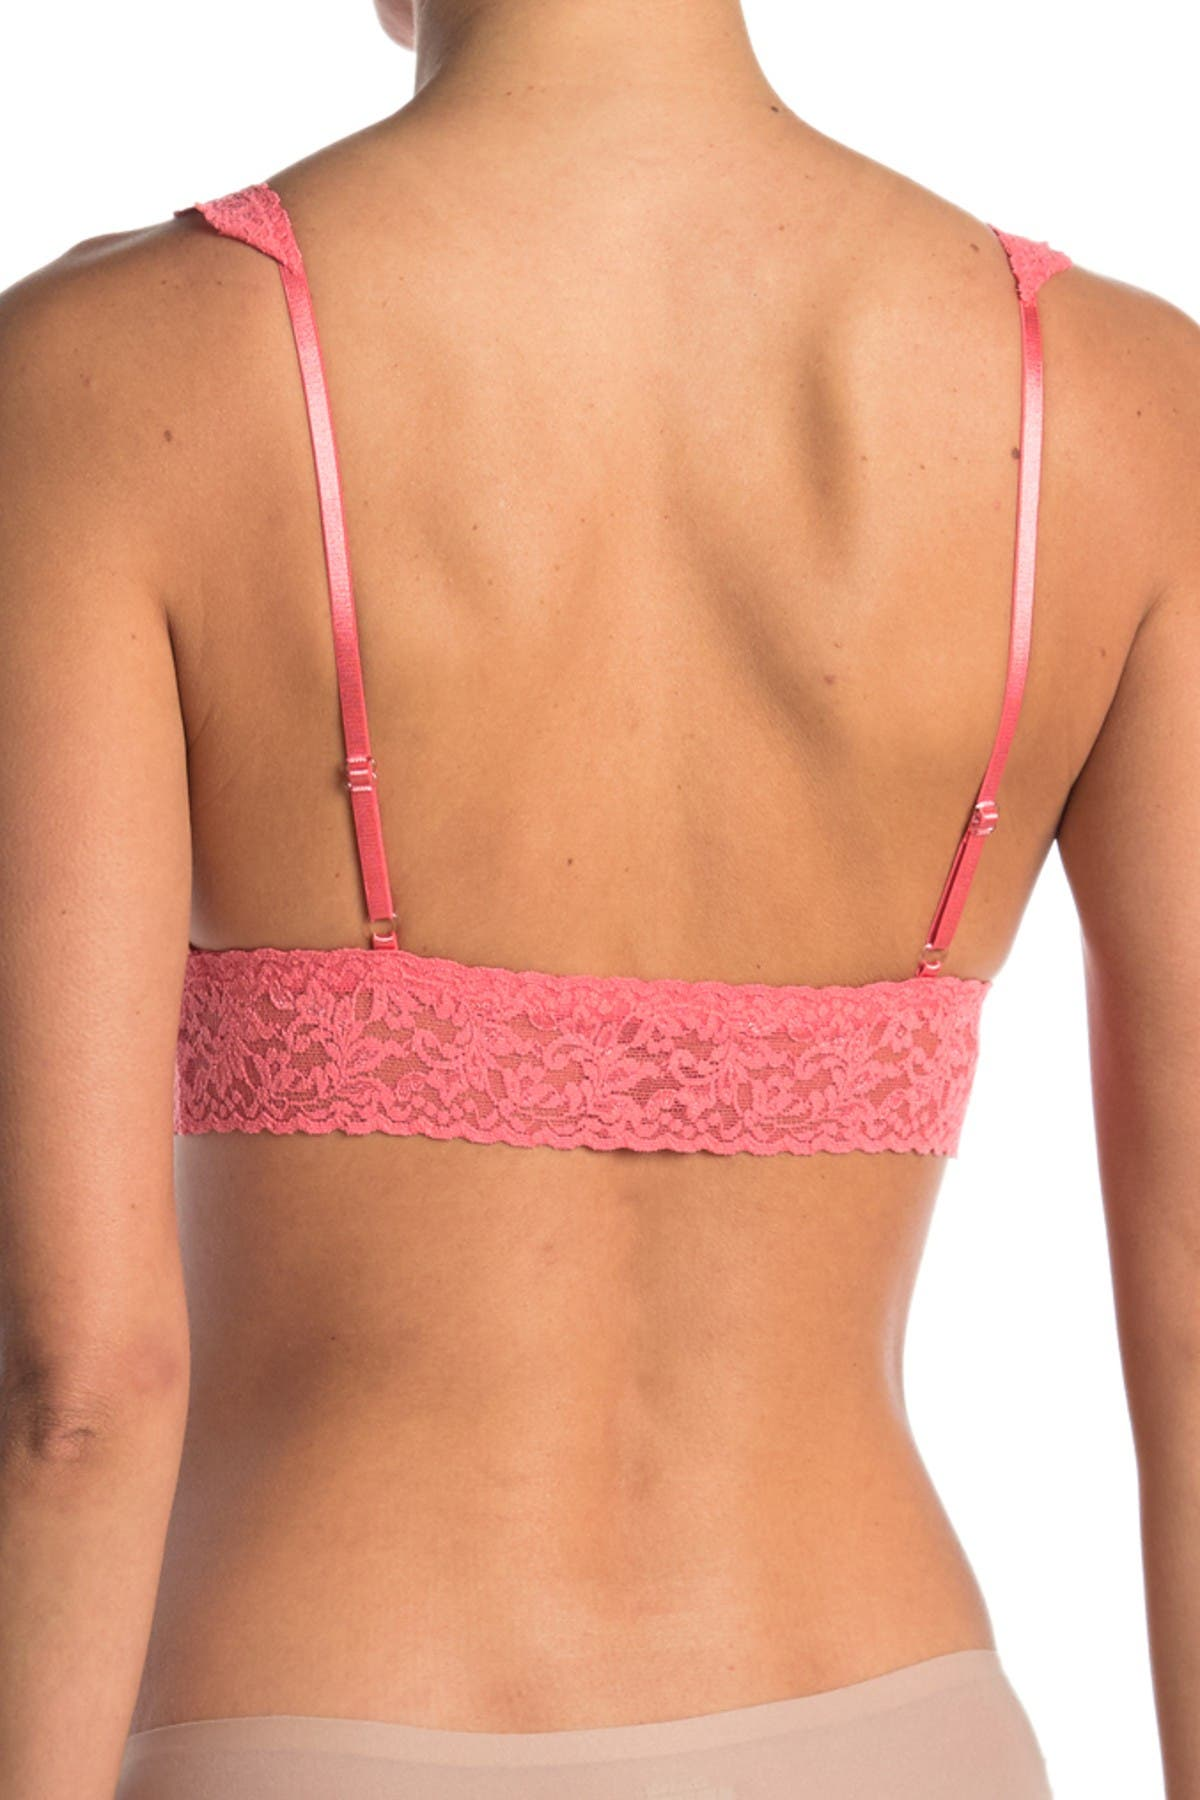 Image of Hanky Panky Signature Lace Bralette